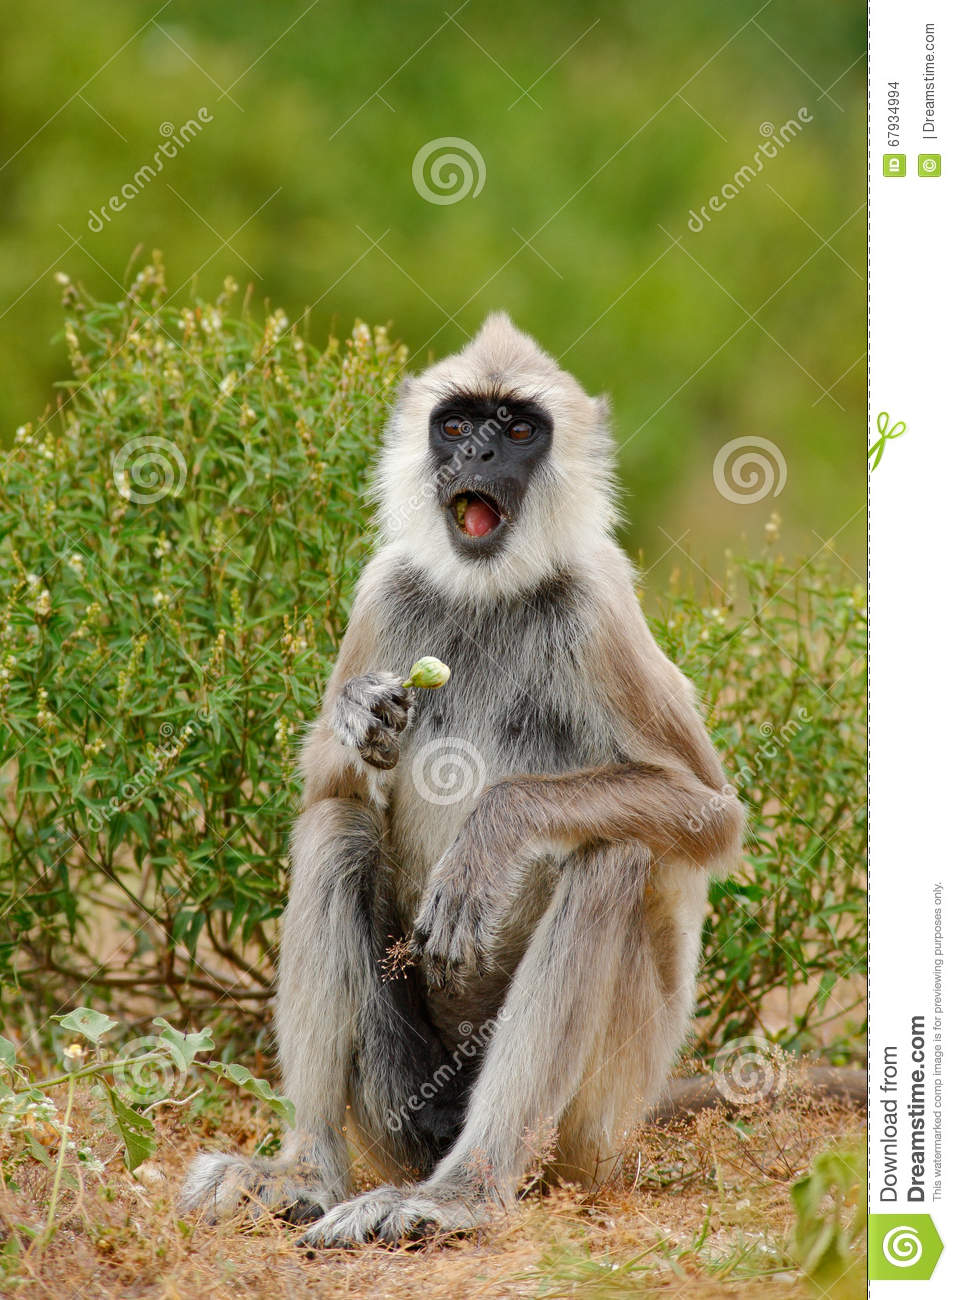 Grey Langur (Semnopithecus entellus) Common Langur | Flickr